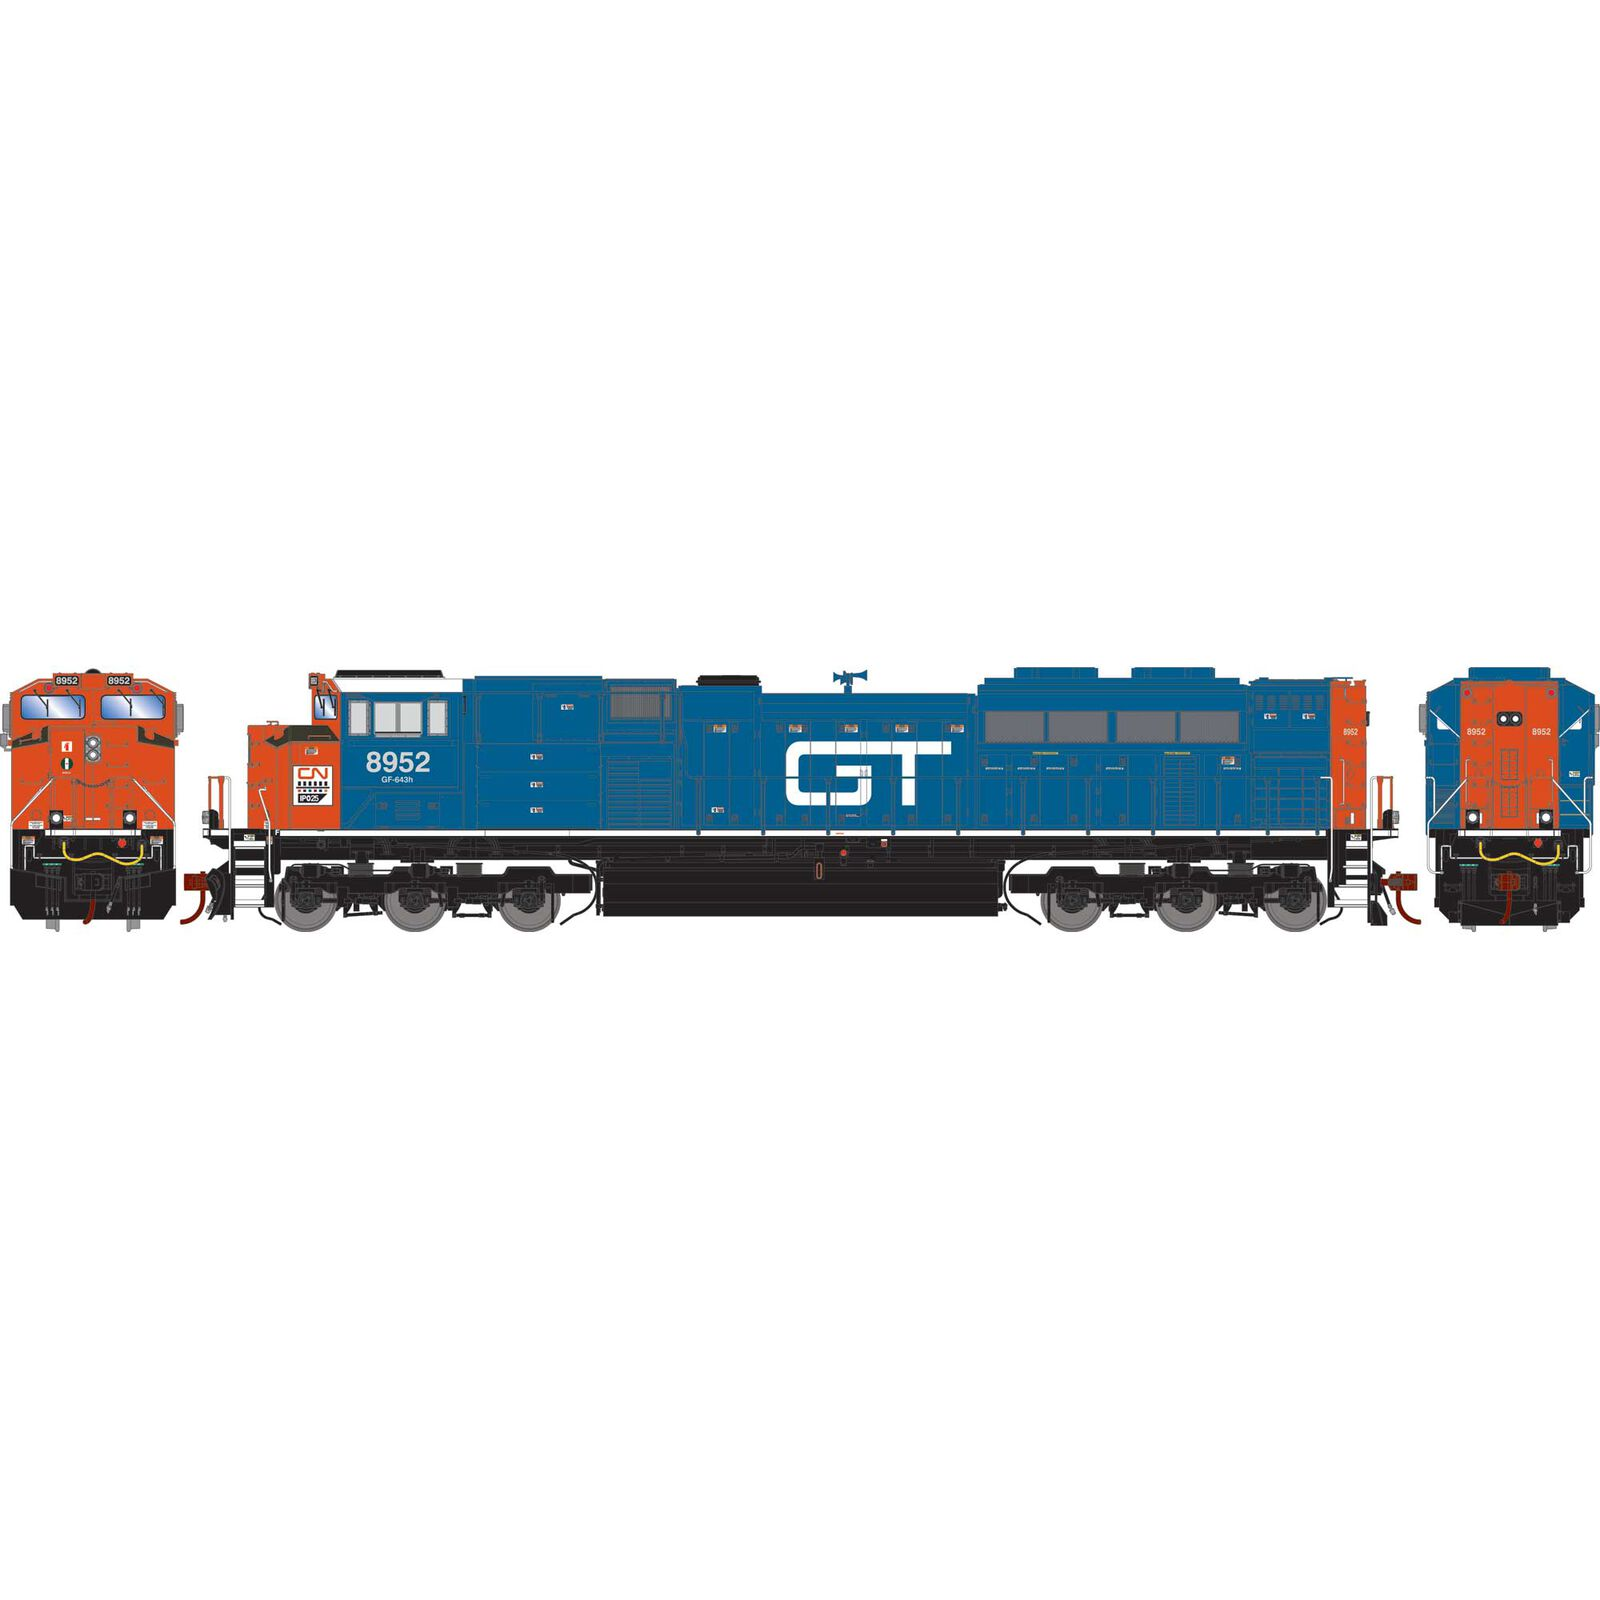 HO G2 SD70M-2 with DCC & Sound, CN/GT/Heritage #8952